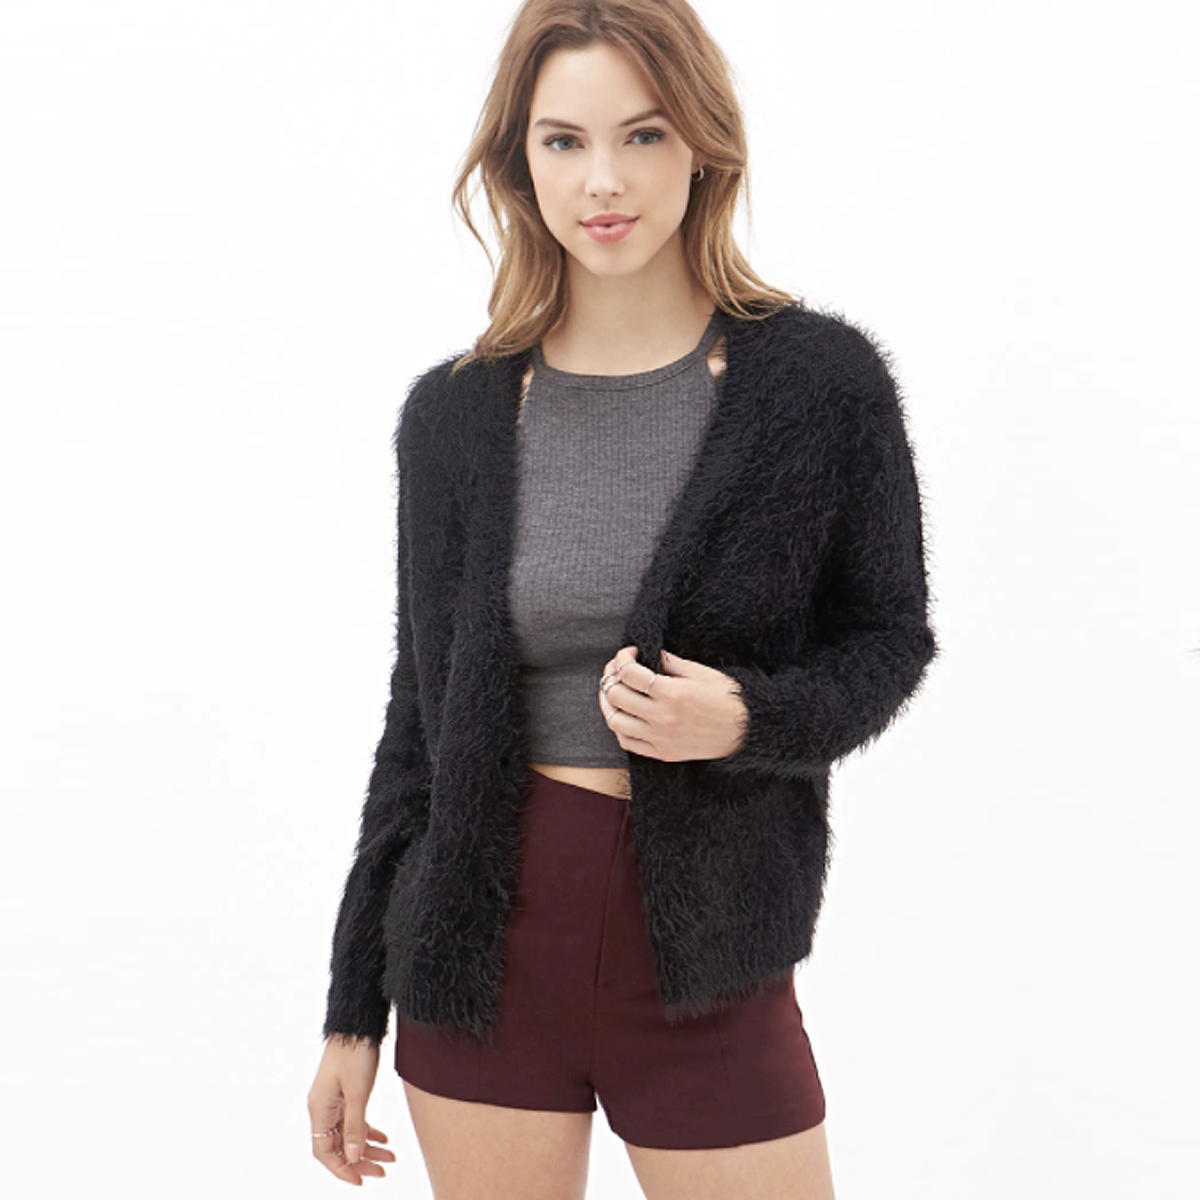 Fuzzy sweaters FTW! They remind me of the '90s, and this cardigan ...